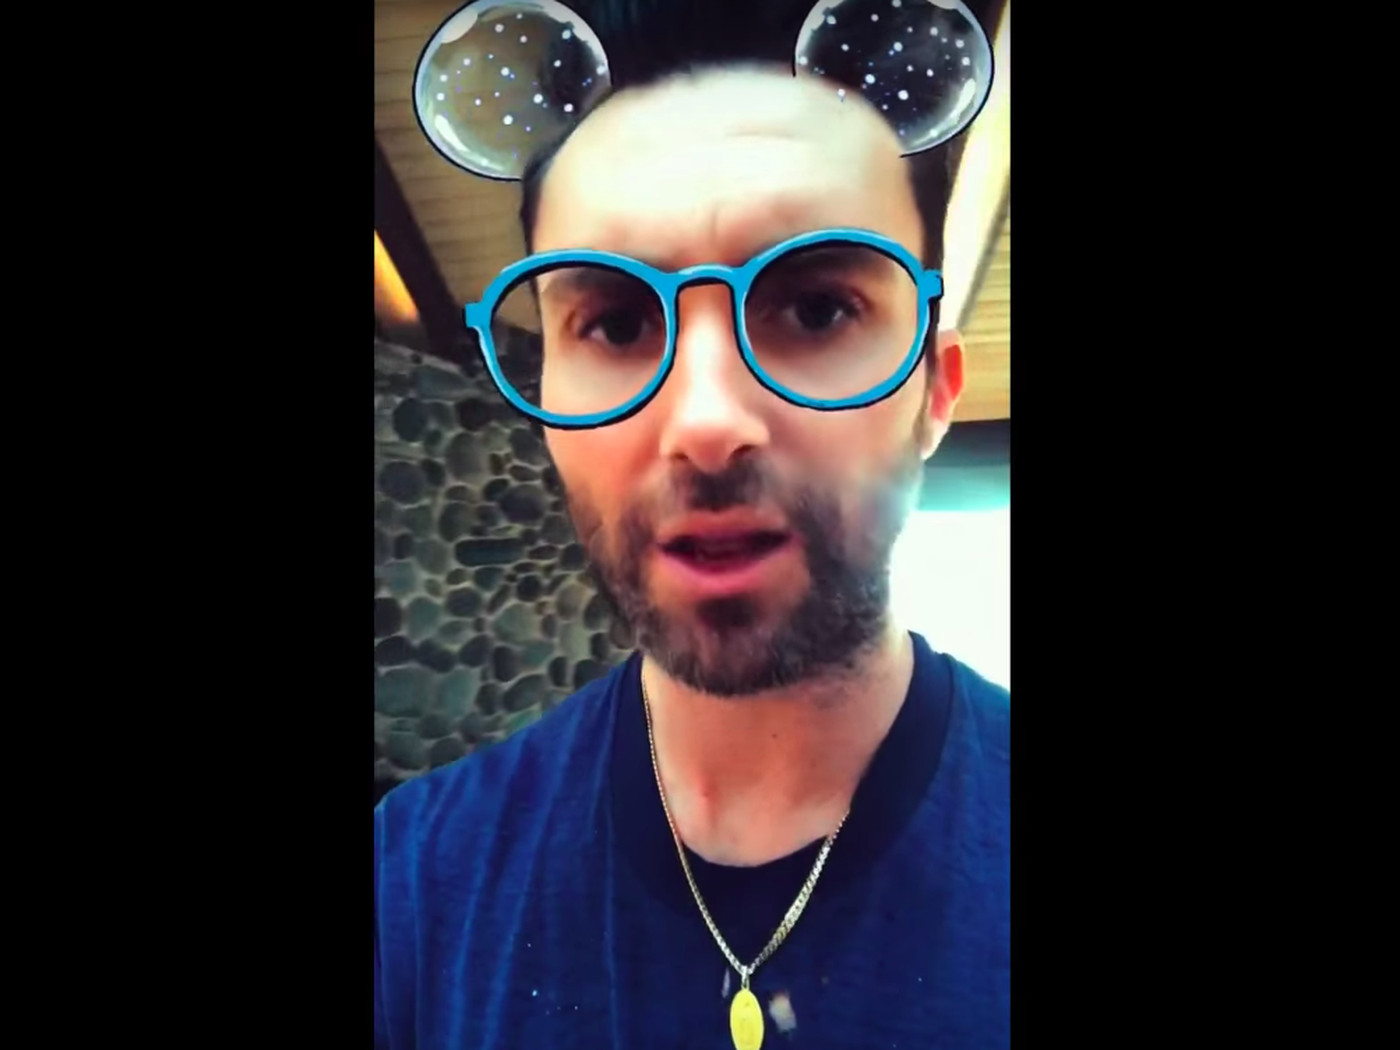 Maroon 5 discovers Snapchat filters in the music video for